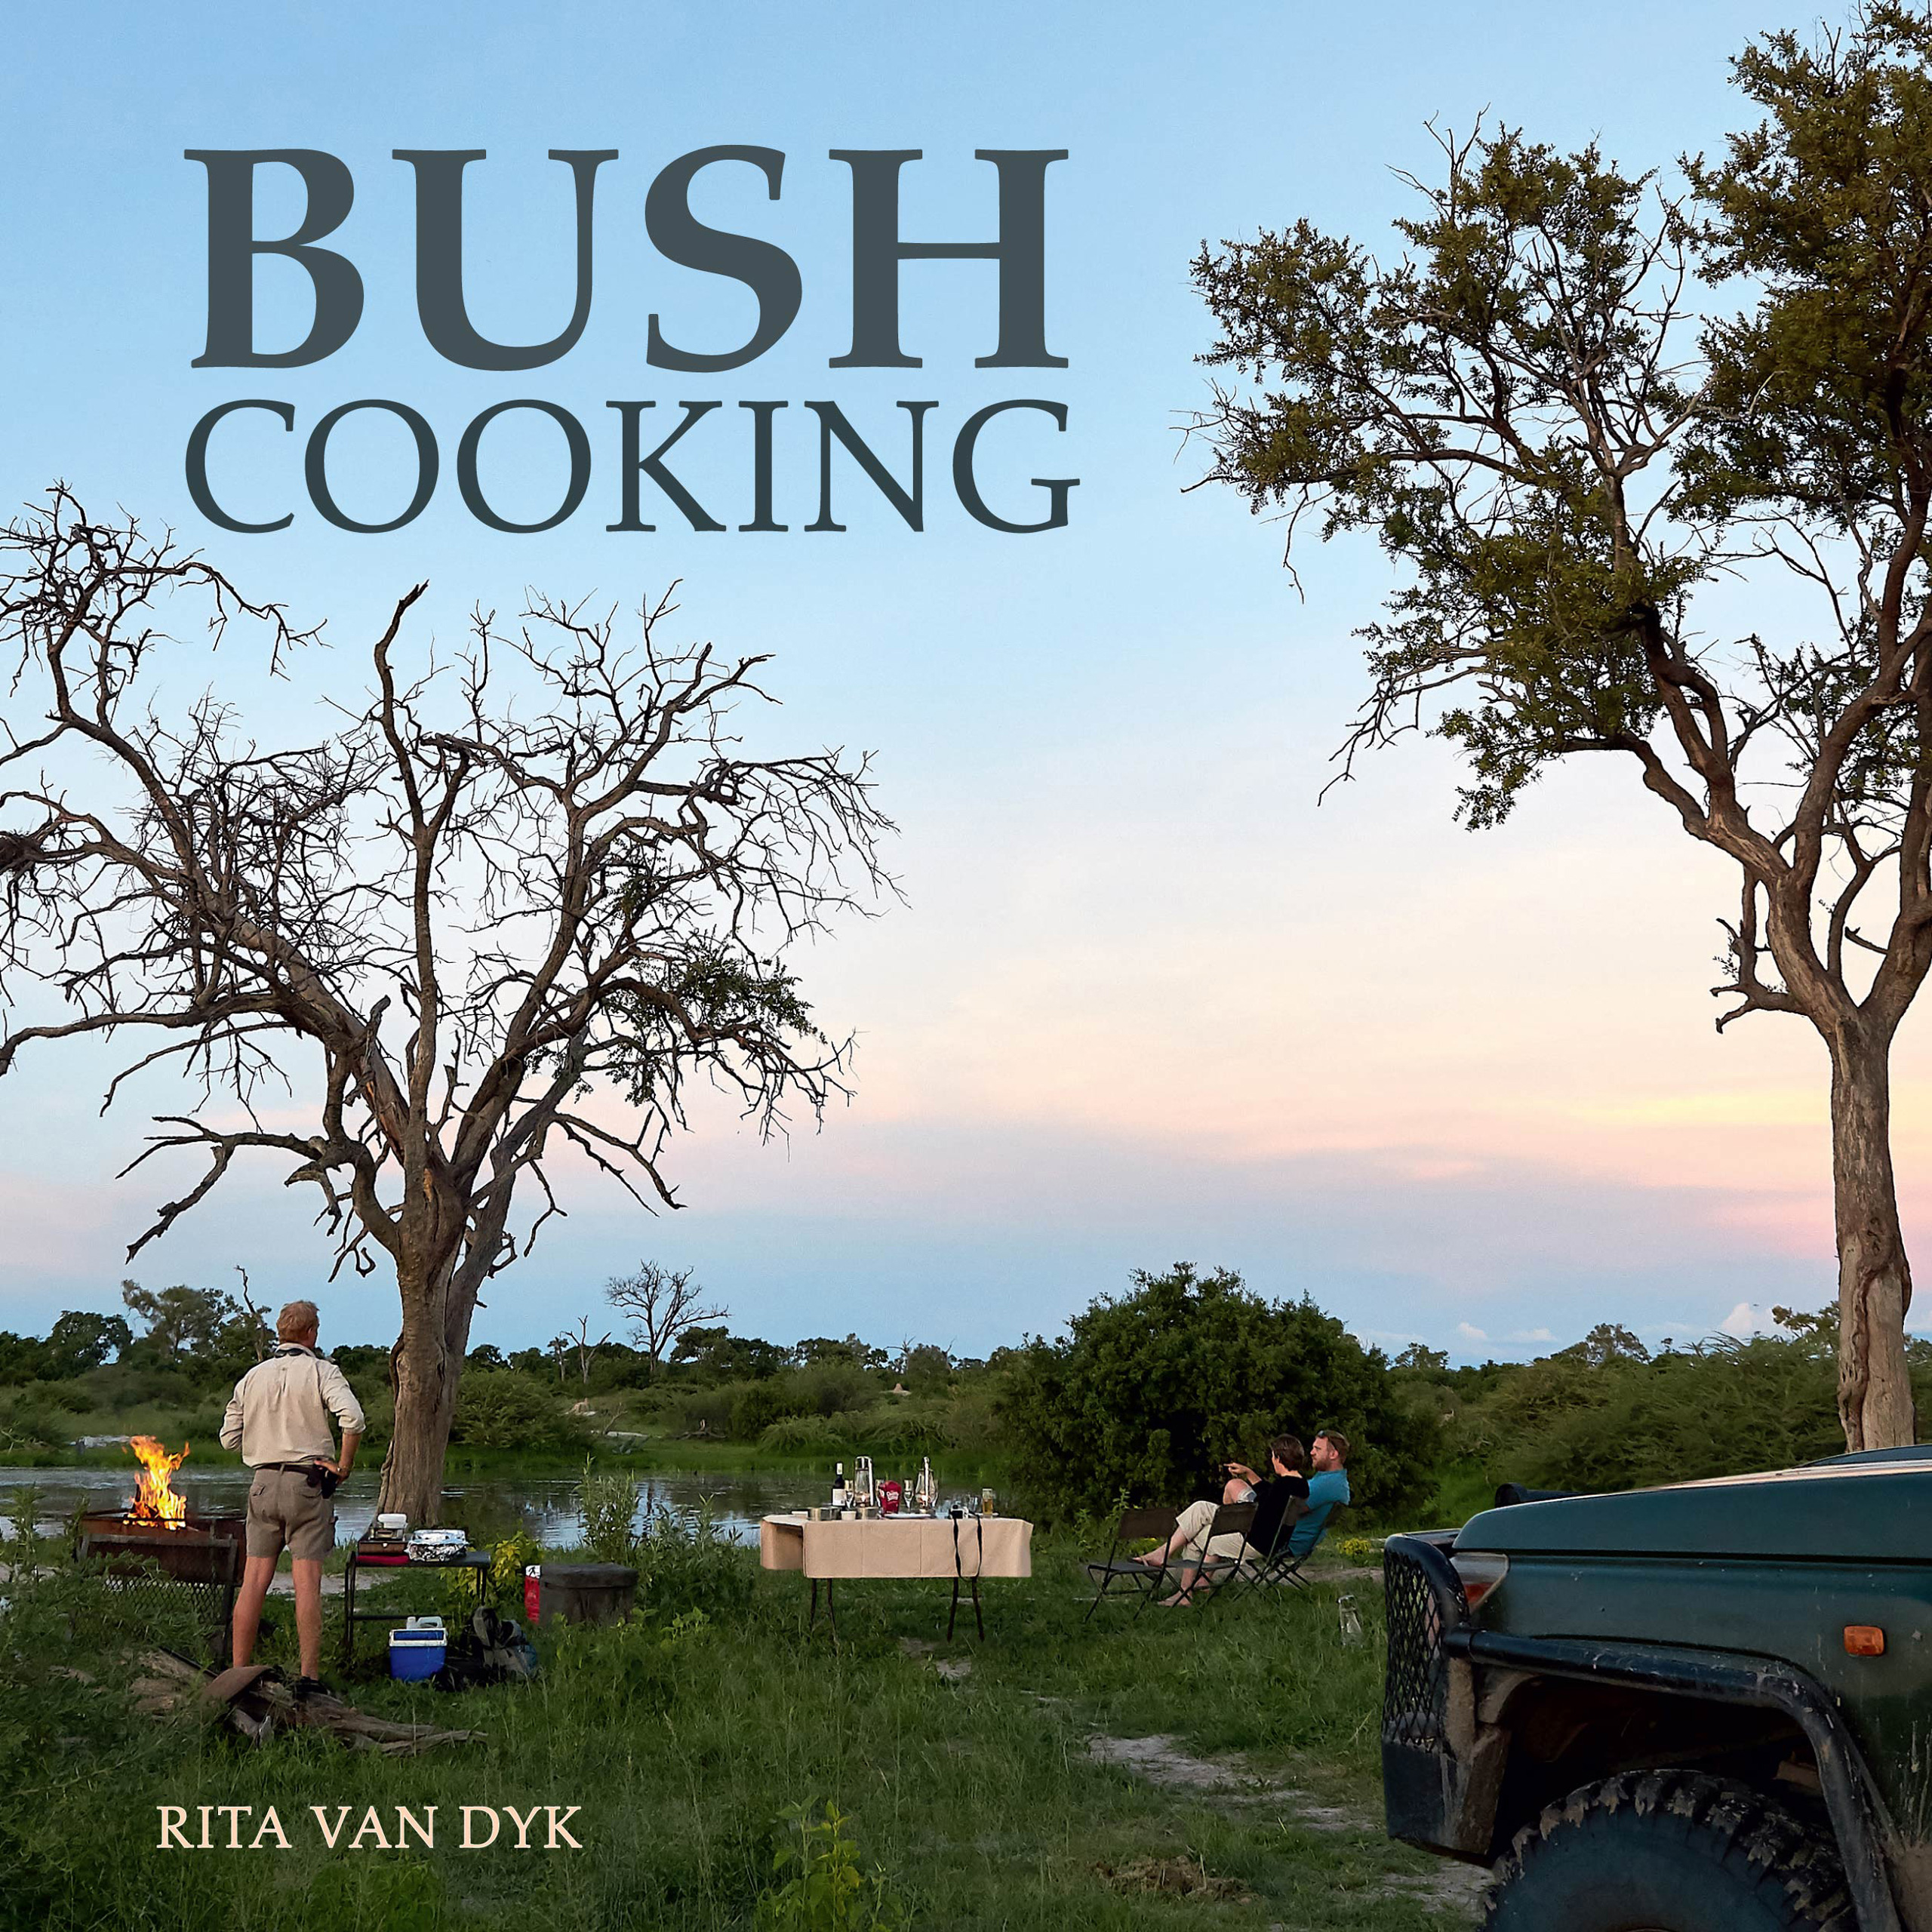 Picture of Bush cooking